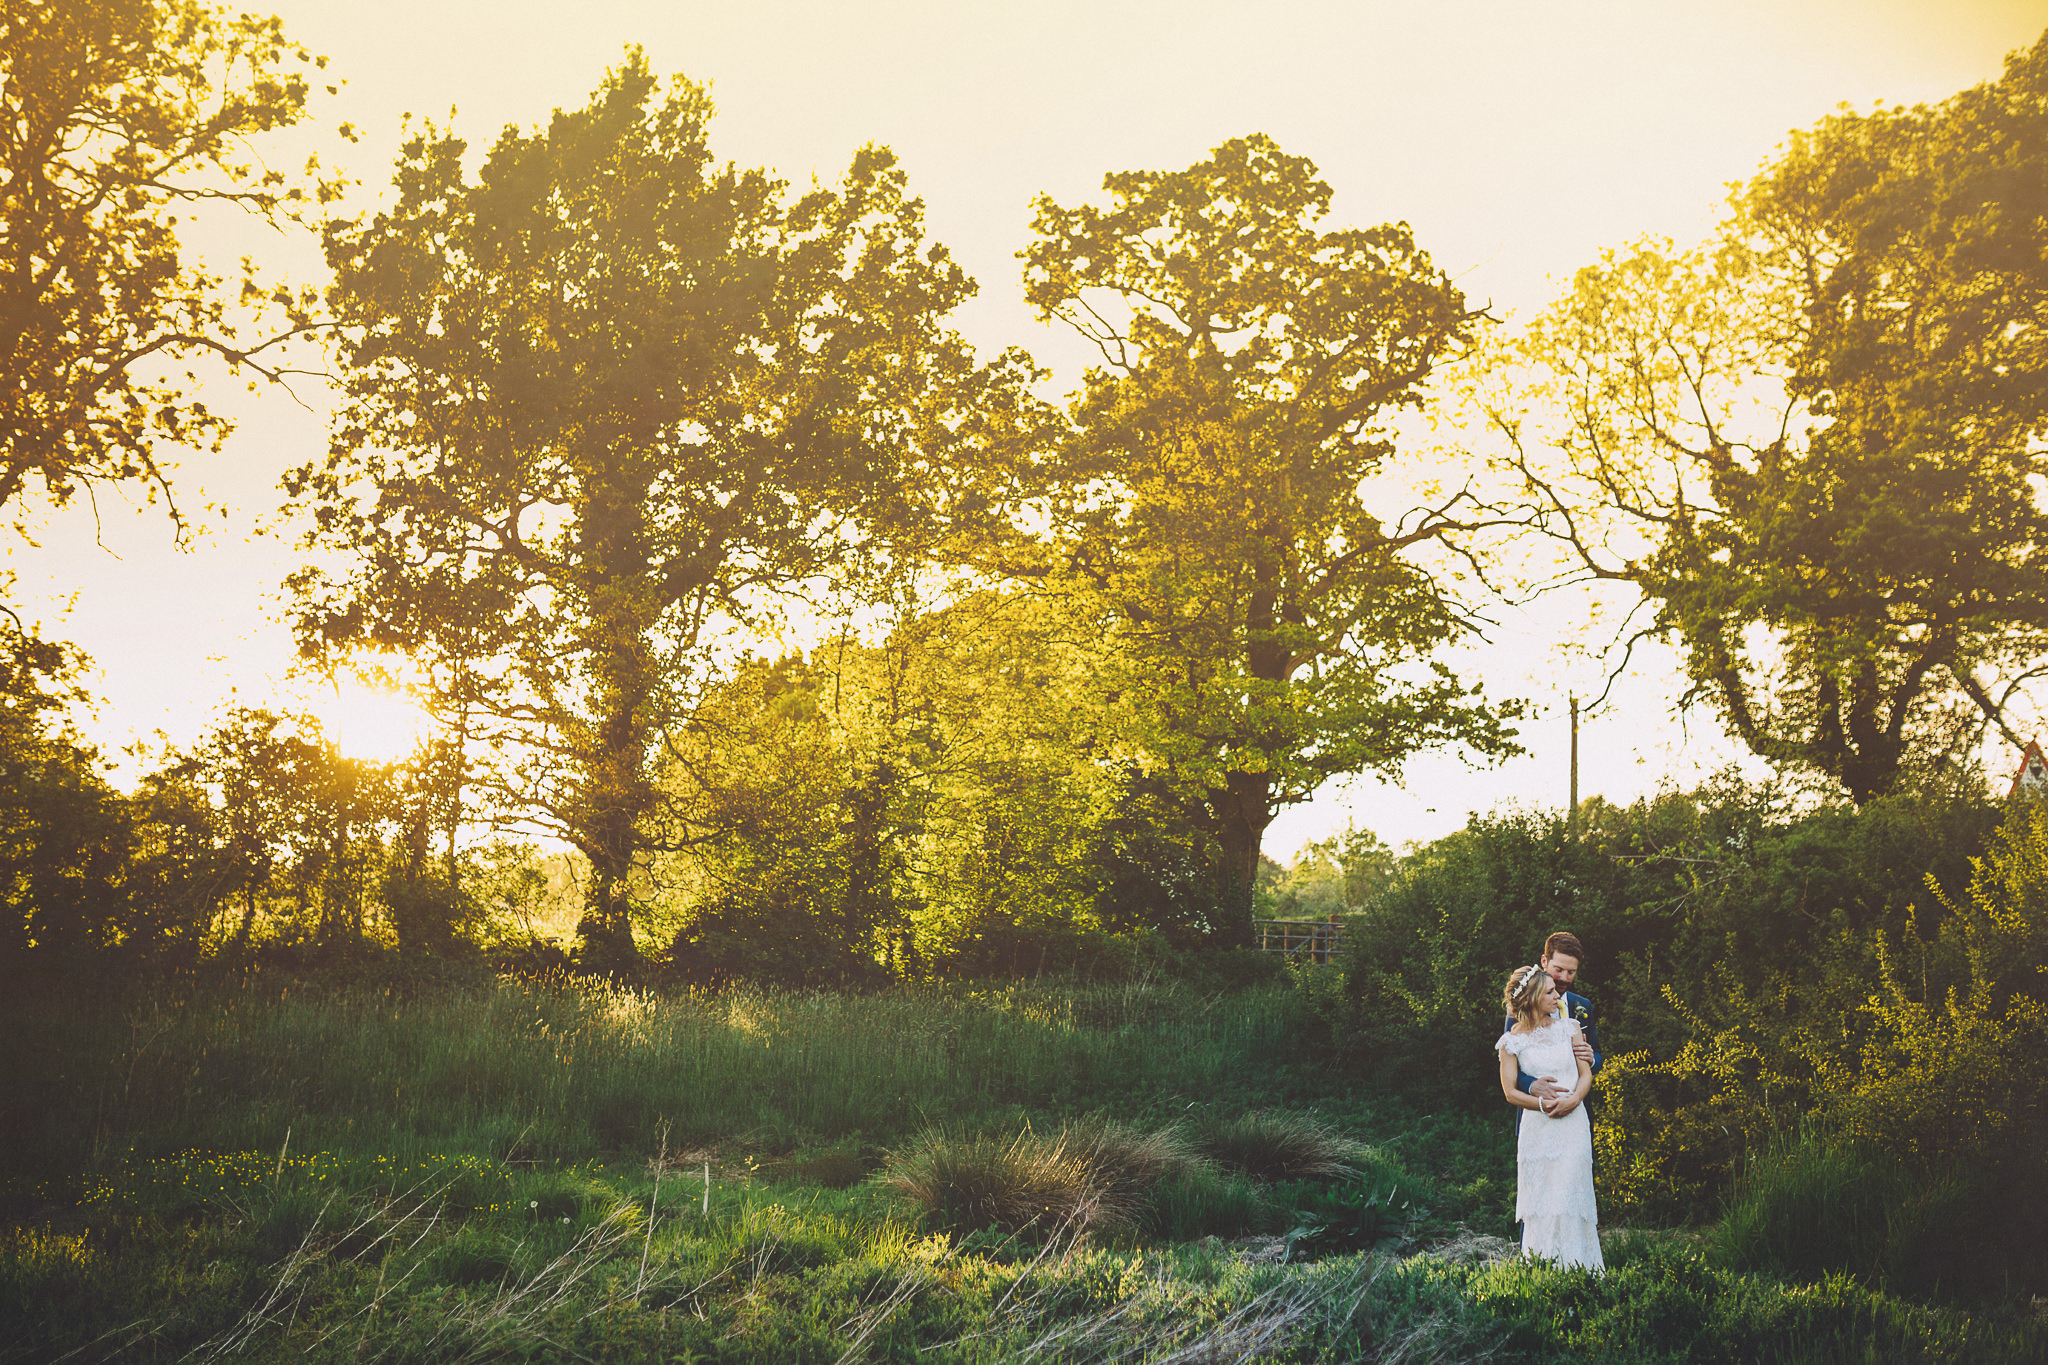 paul-marbrook-best-wedding-photographer-north-wales-096122